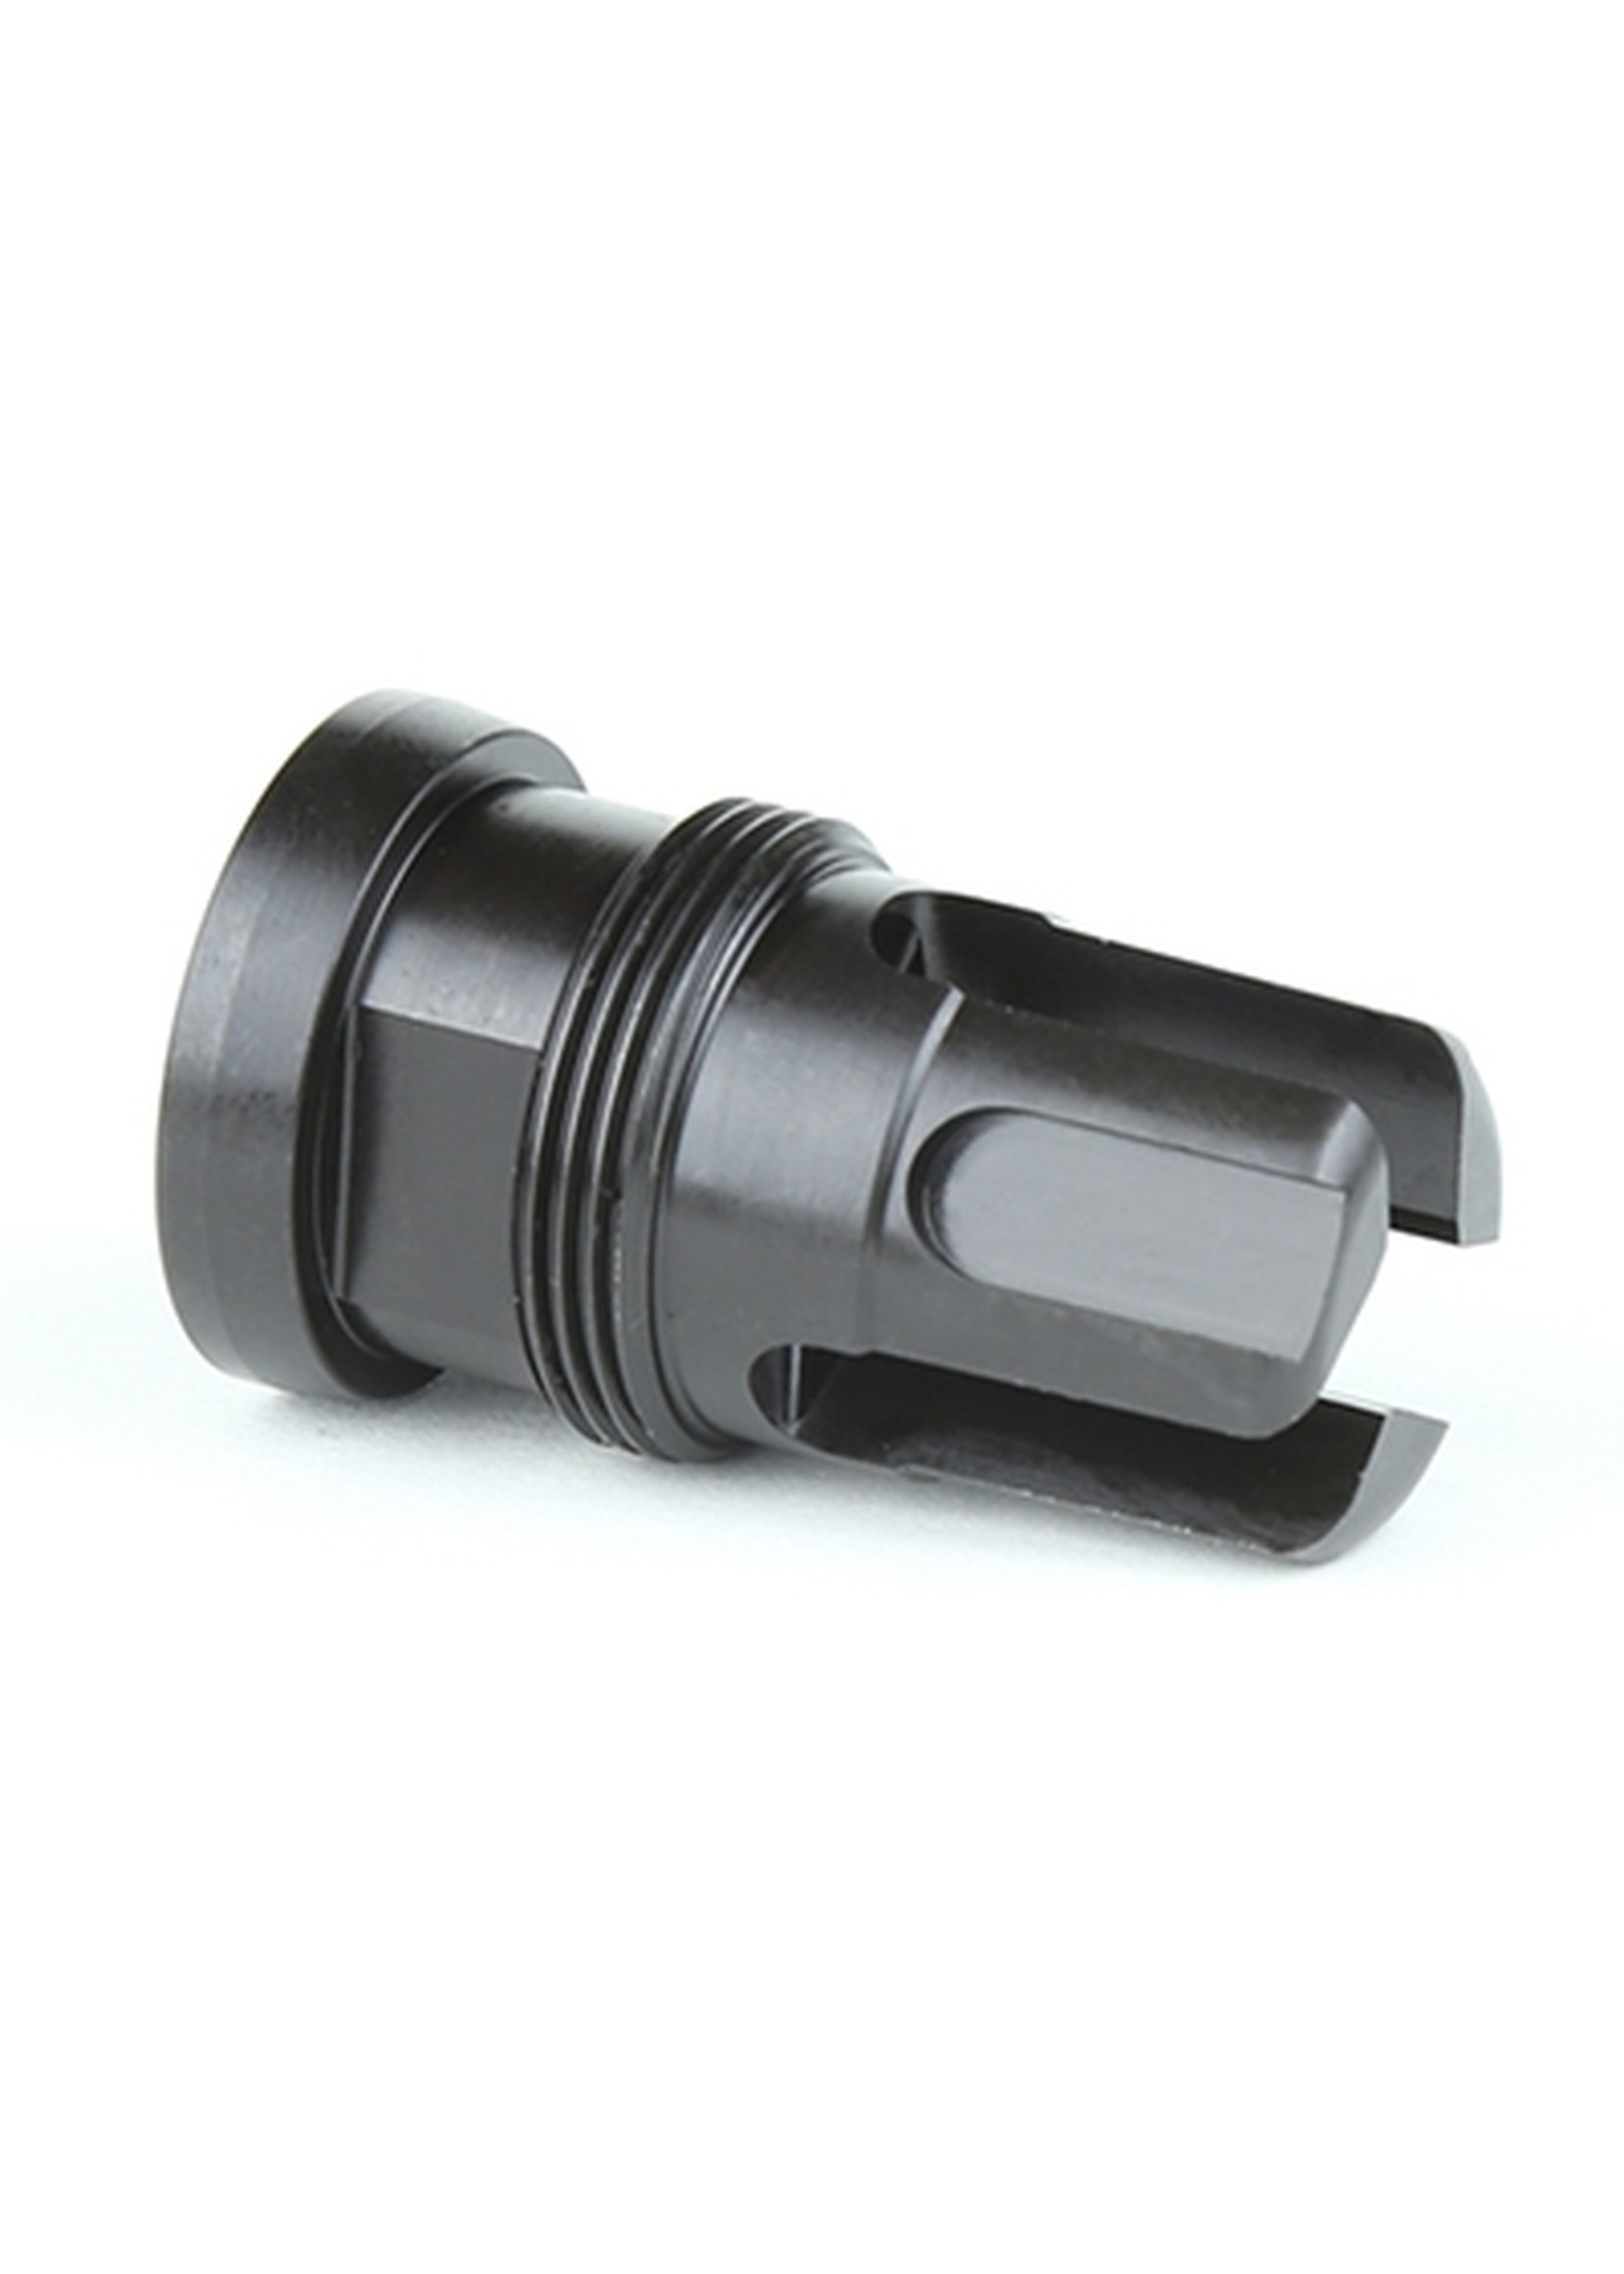 GRIFFIN GRIFFIN ARMAMENT TAPER SILENCER MOUNT 13X1LH .22CAL